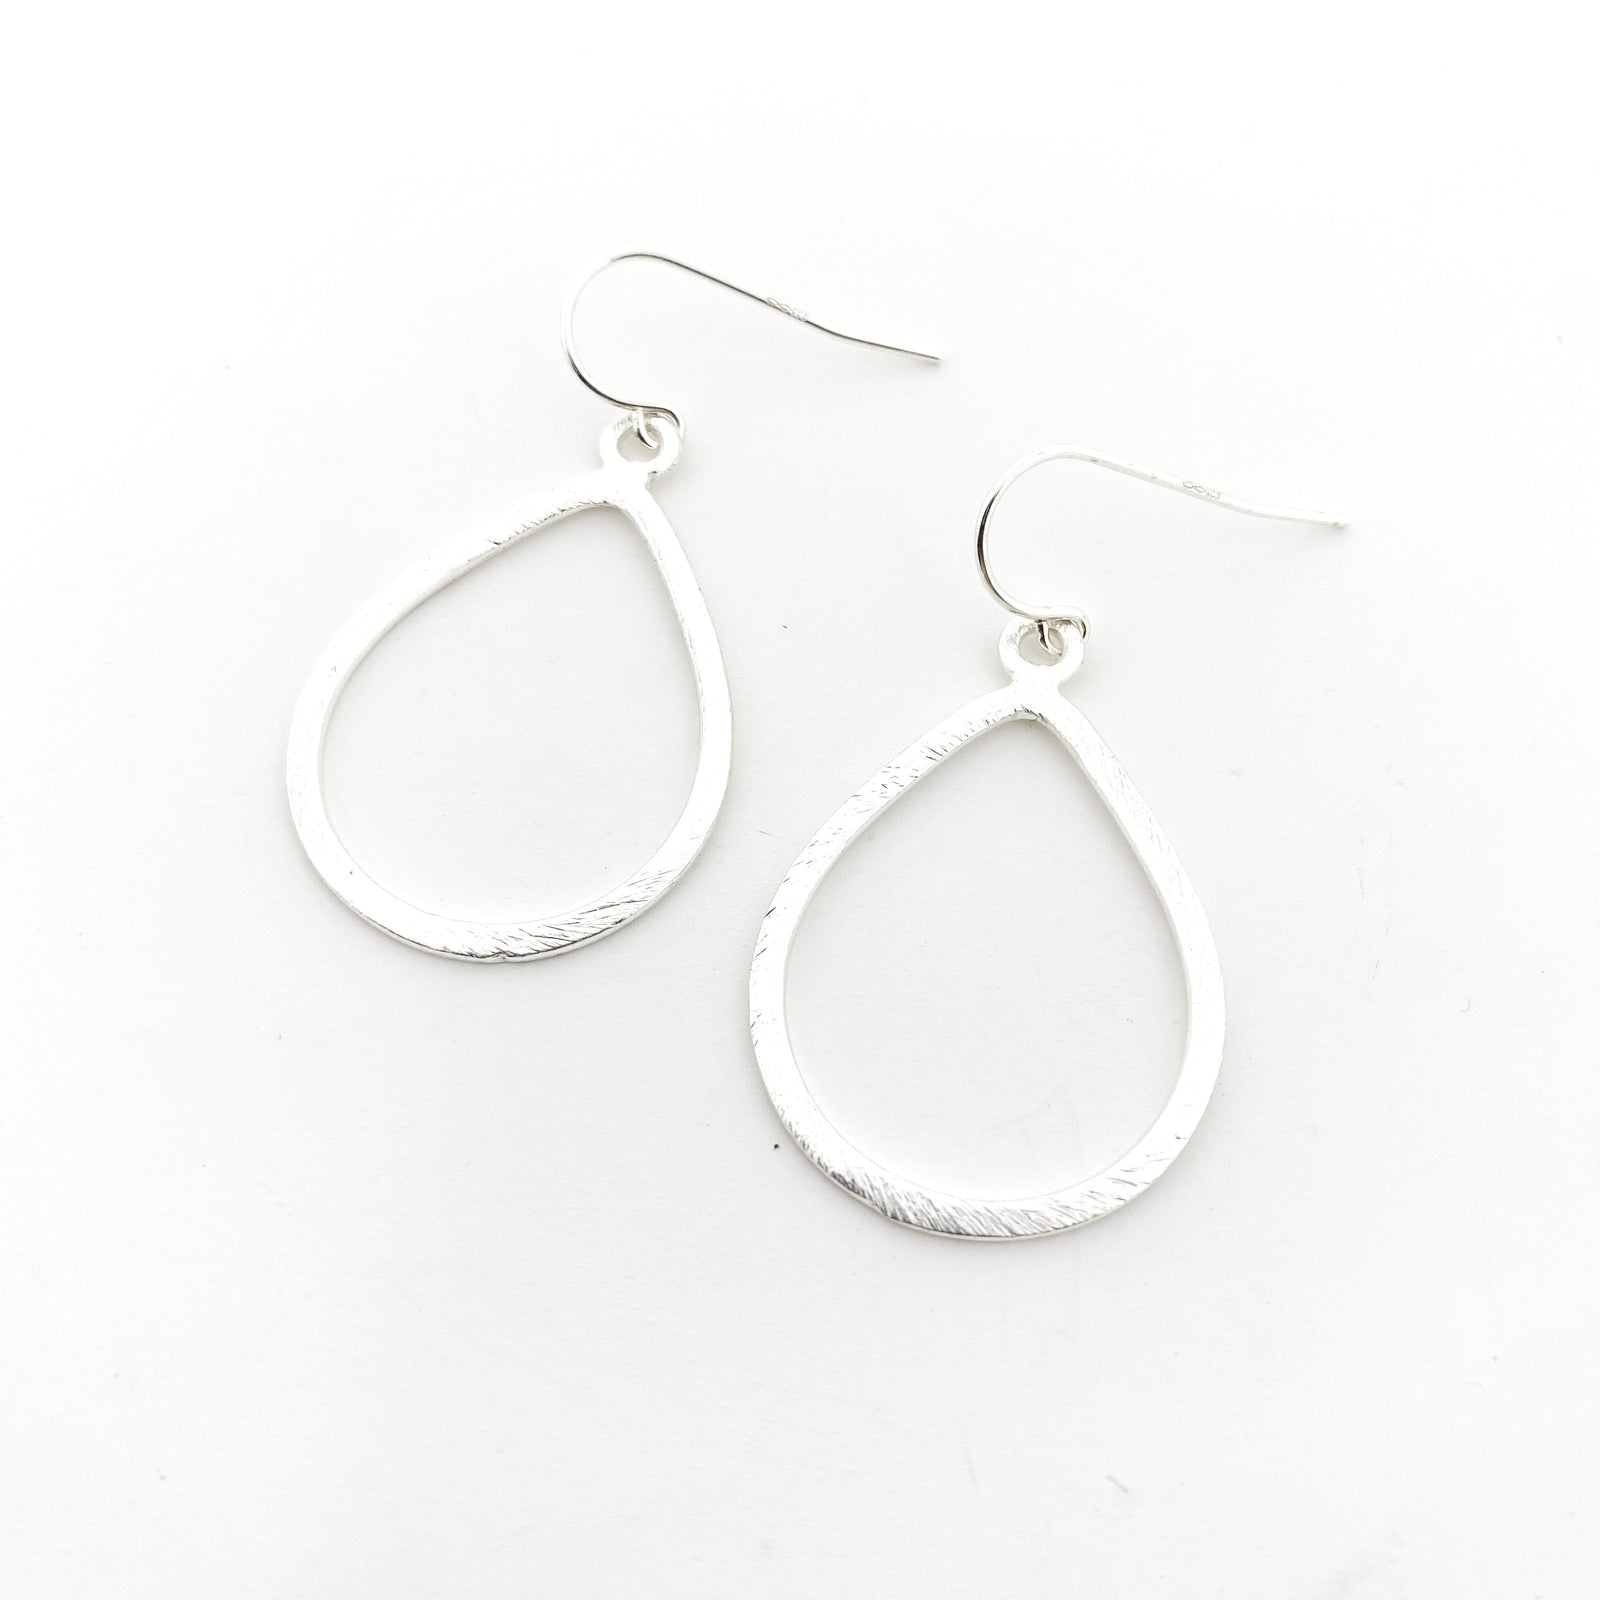 BRUSHED OPEN DROP EARRINGS | STERLING SILVER